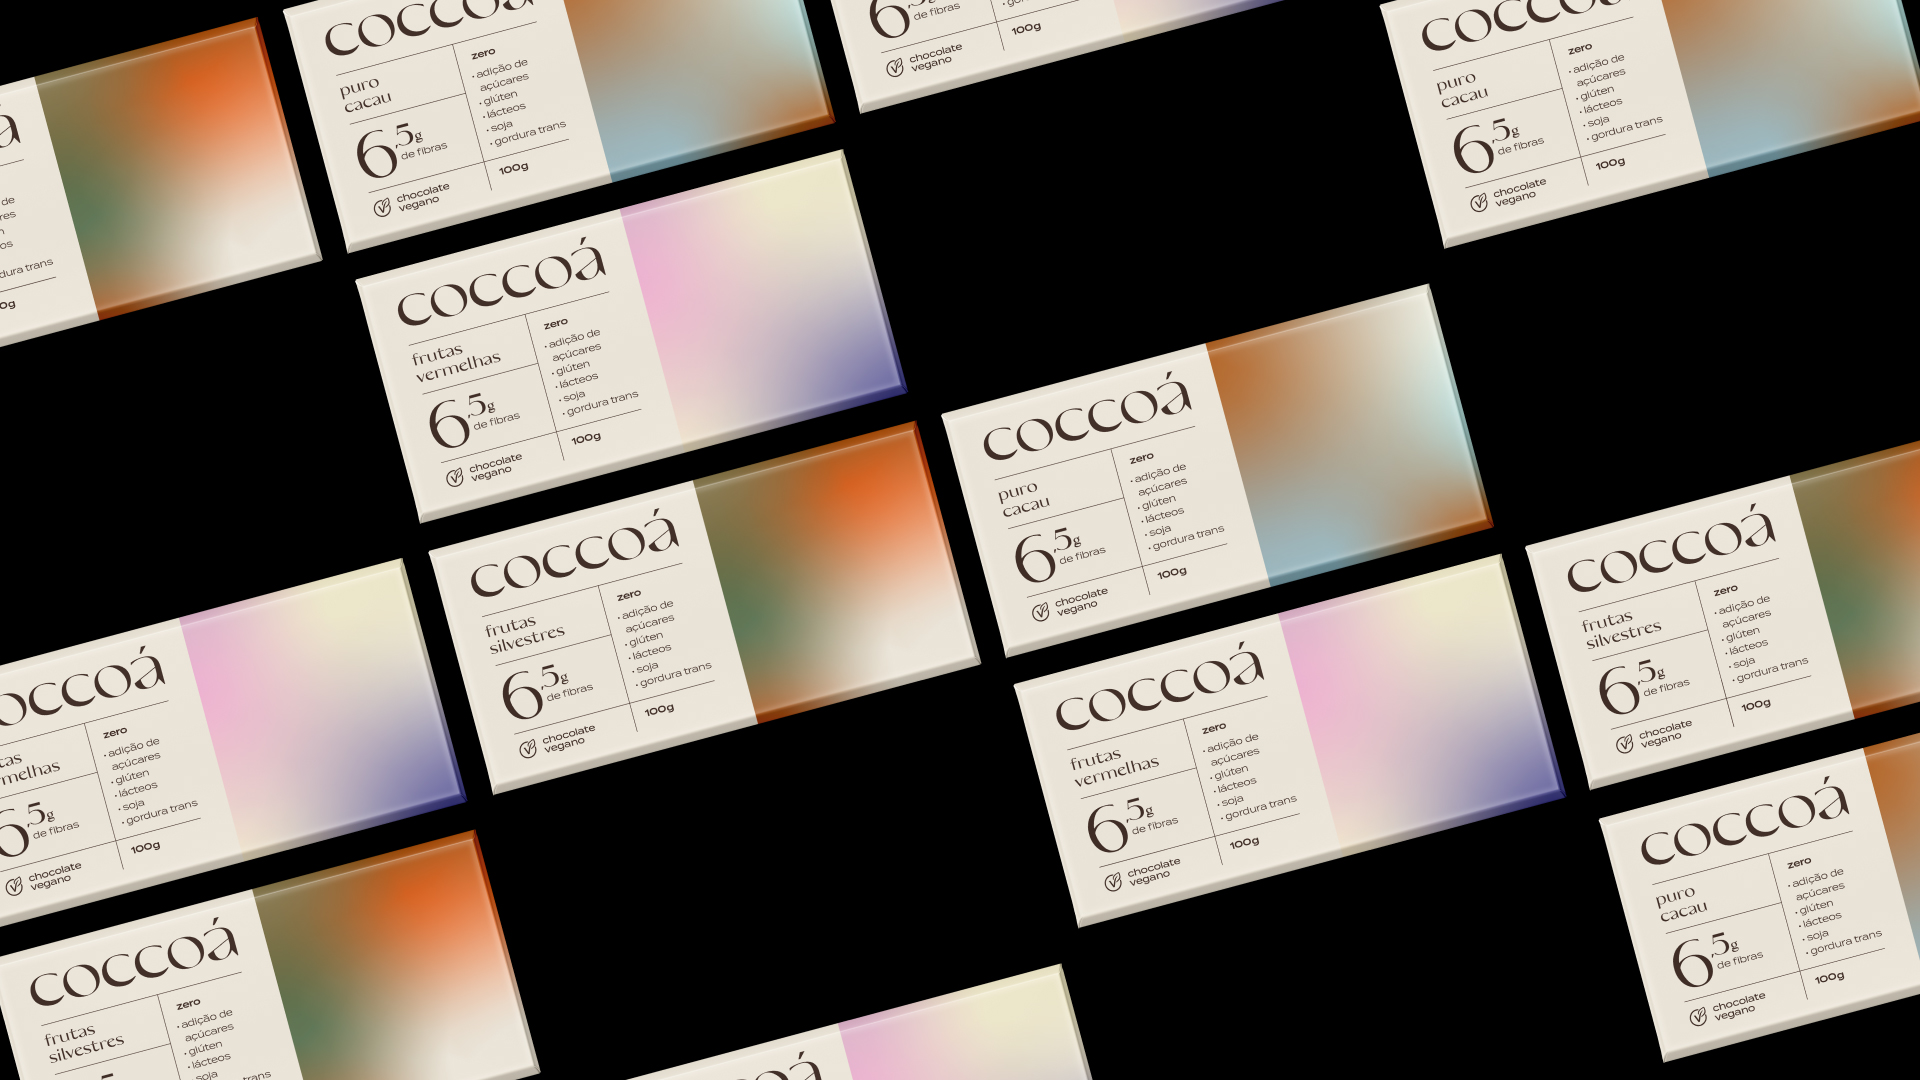 Concept Coccoá Brand and Packaging by Matheus Ferreira